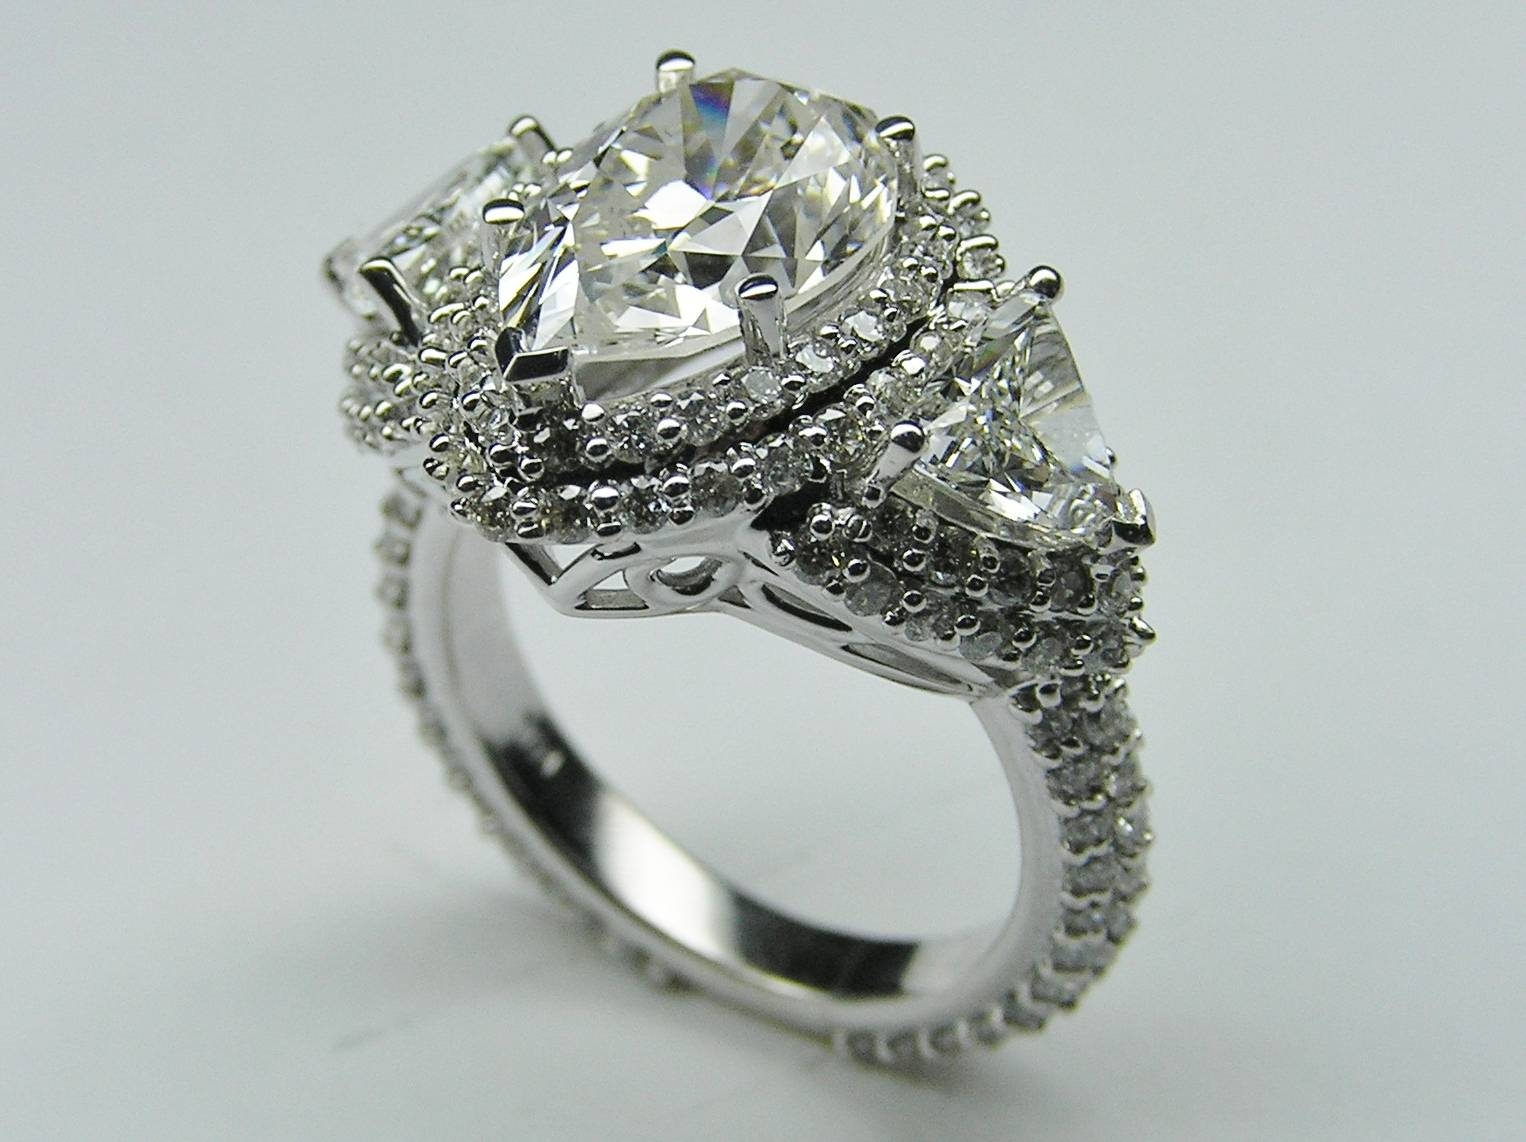 Engagement Rings : Pear Shaped Engagement Ring Stunning Engagement With Regard To Vintage Engagement Rings Northern Ireland (View 9 of 15)